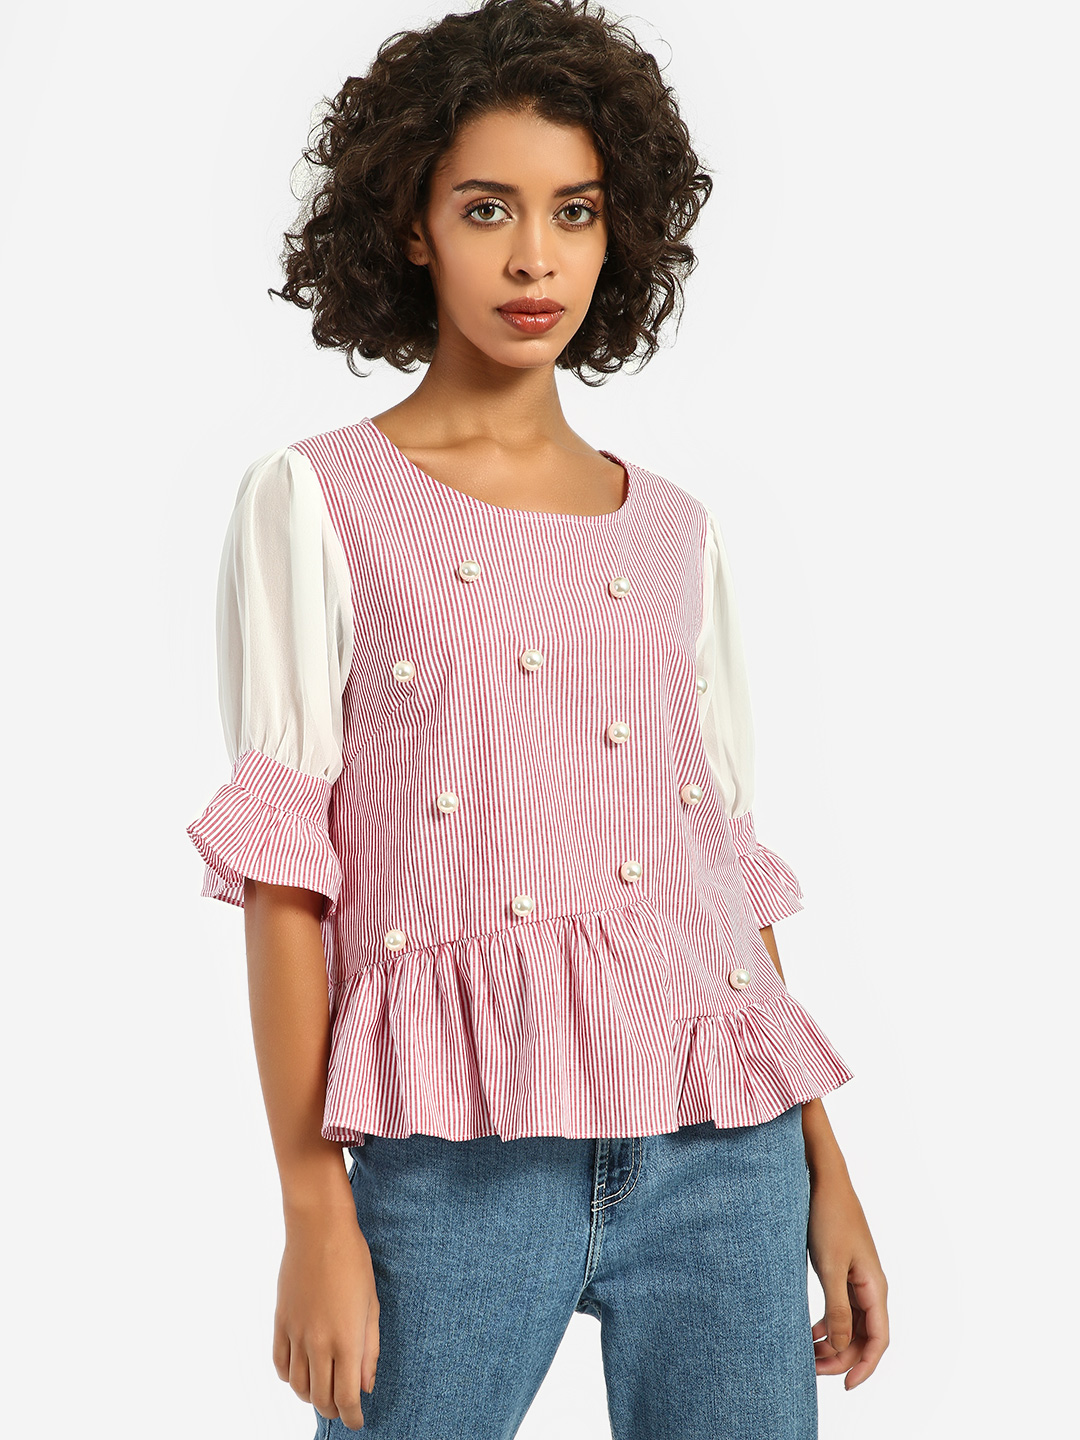 JJ's Fairyland Pink/White Stripe Pearl Embellished Peplum Top 1